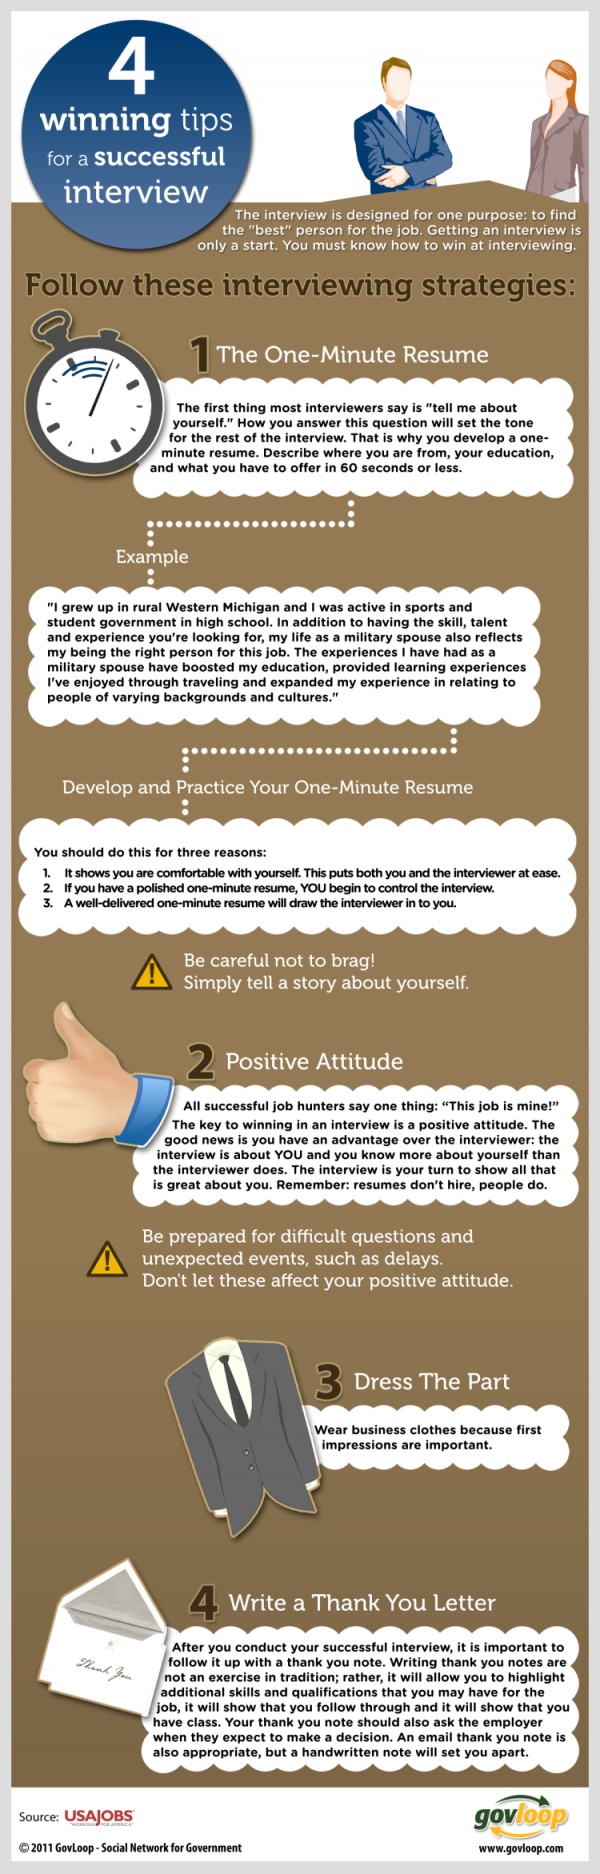 4 winning tips for a succesful interview infographic